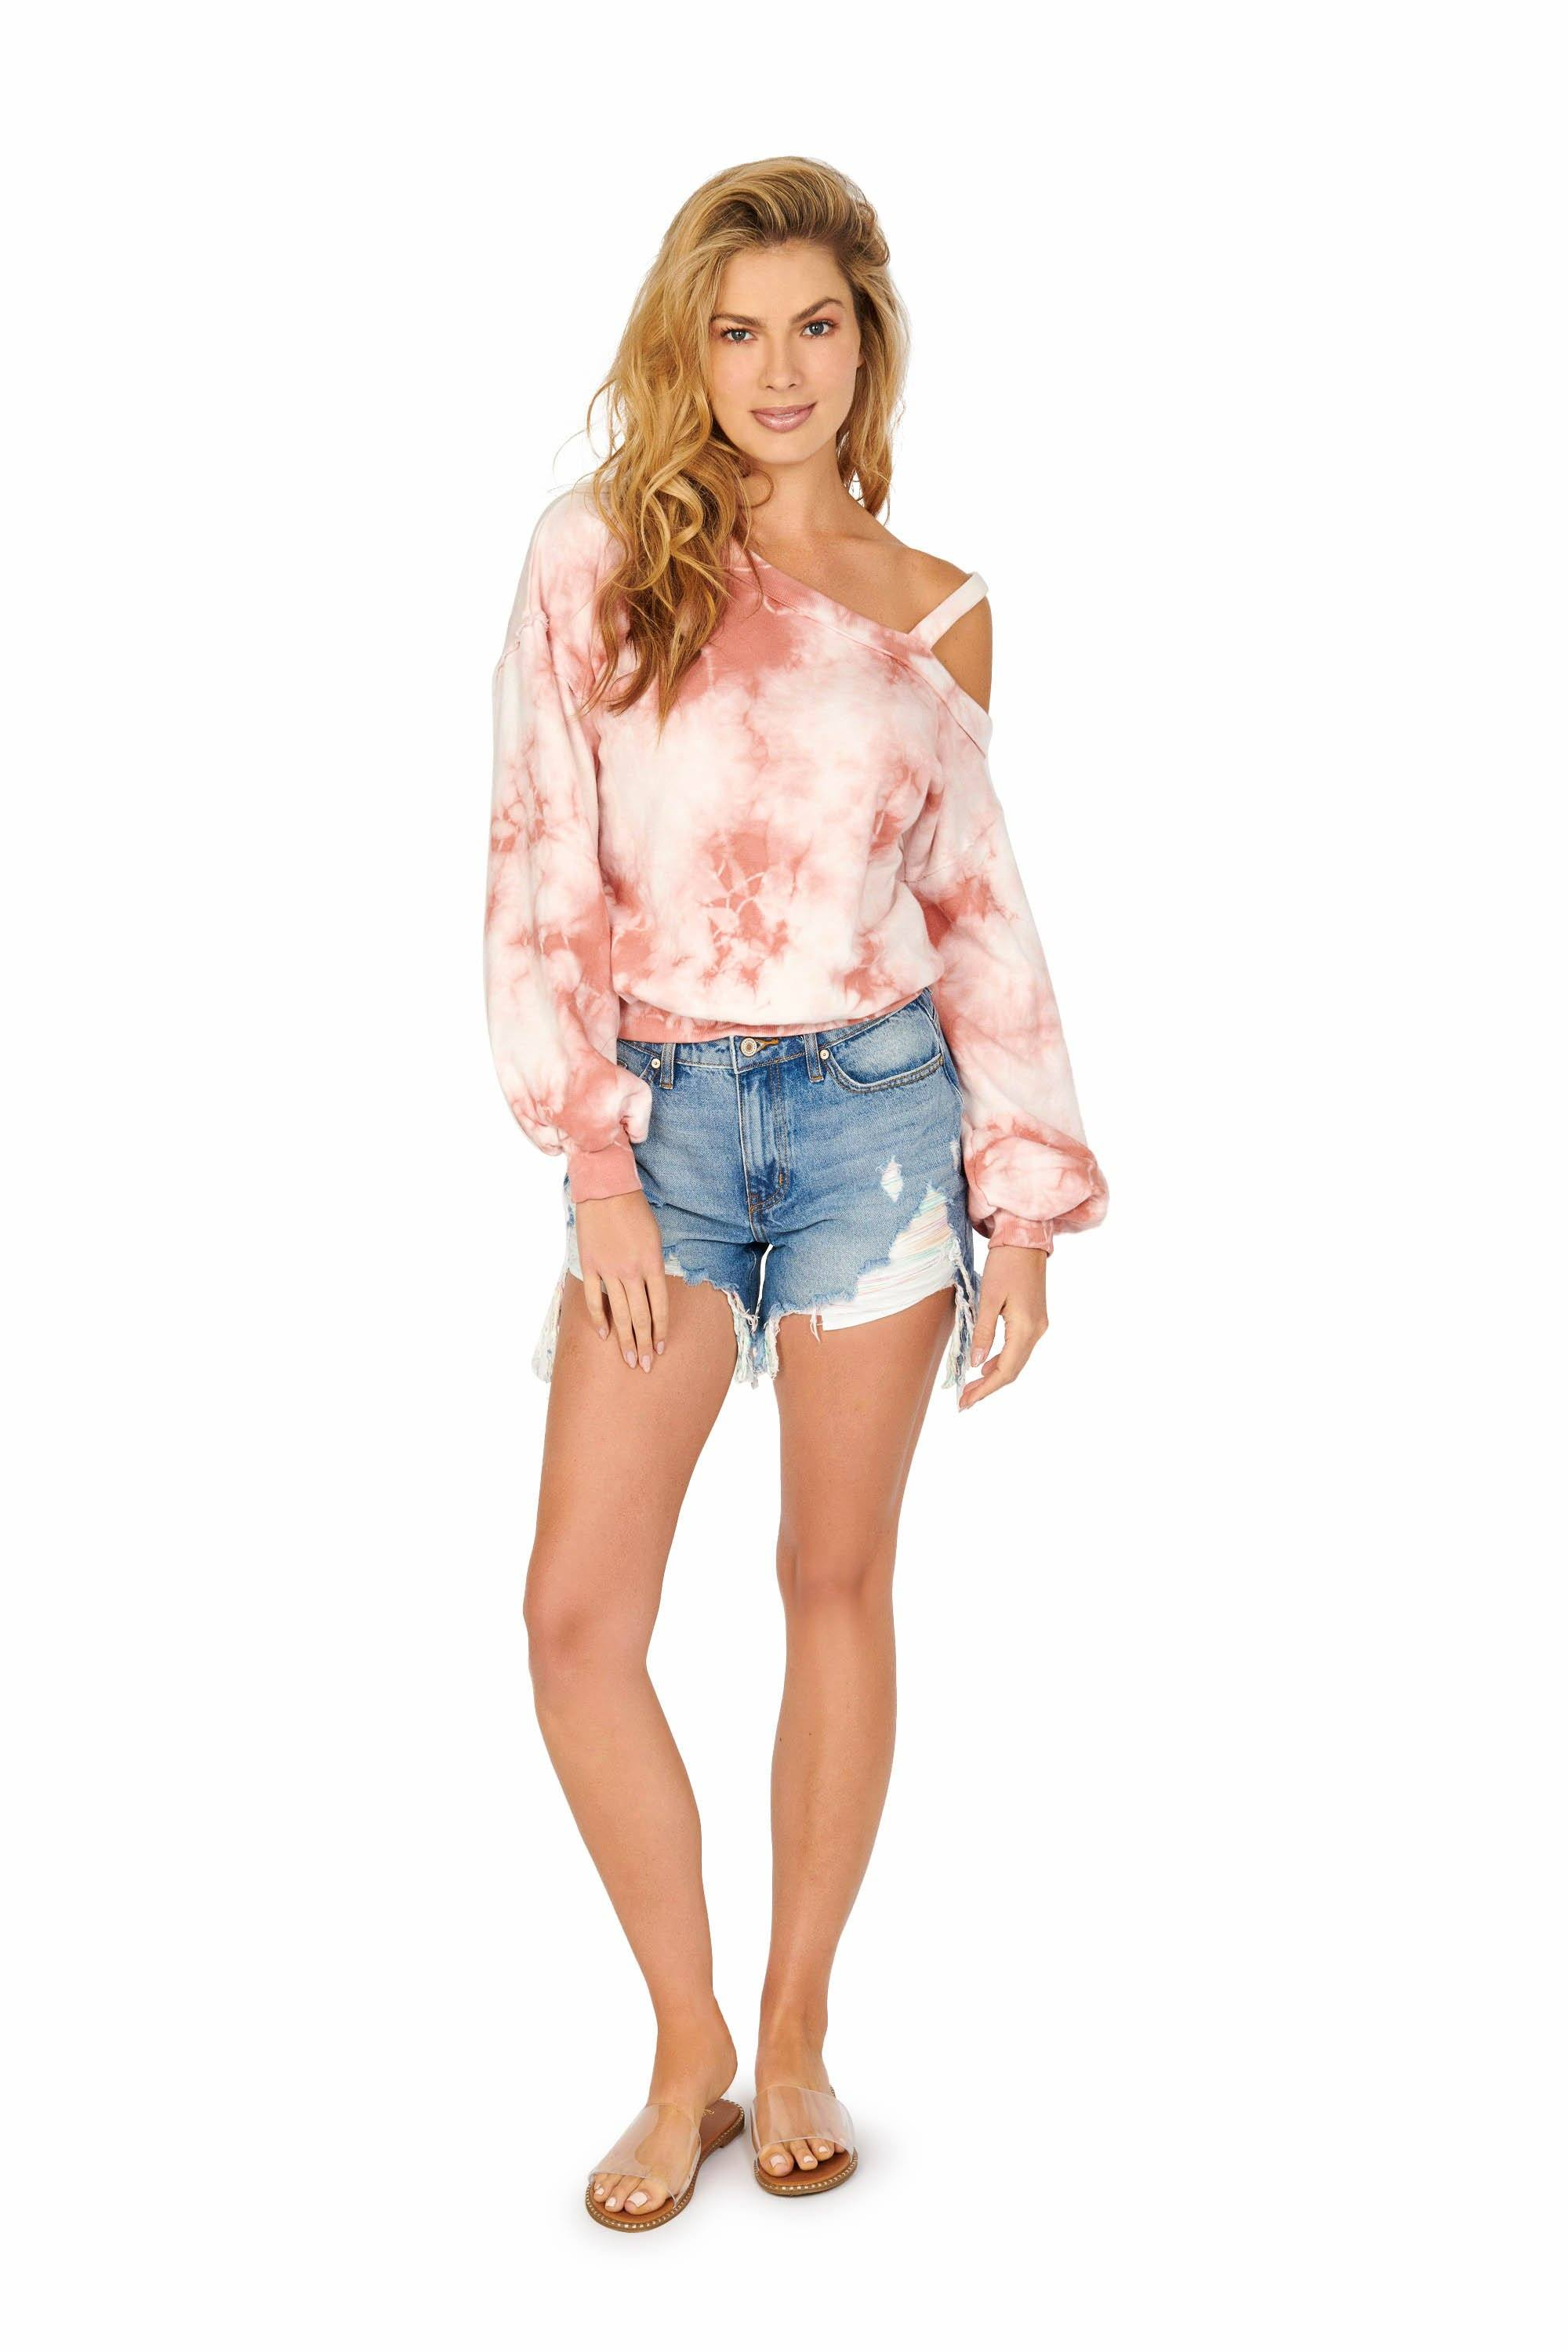 Long Sleeve Tie-Dye One Shoulder Sweatshirt Pink Tops HYPEACH BOUTIQUE